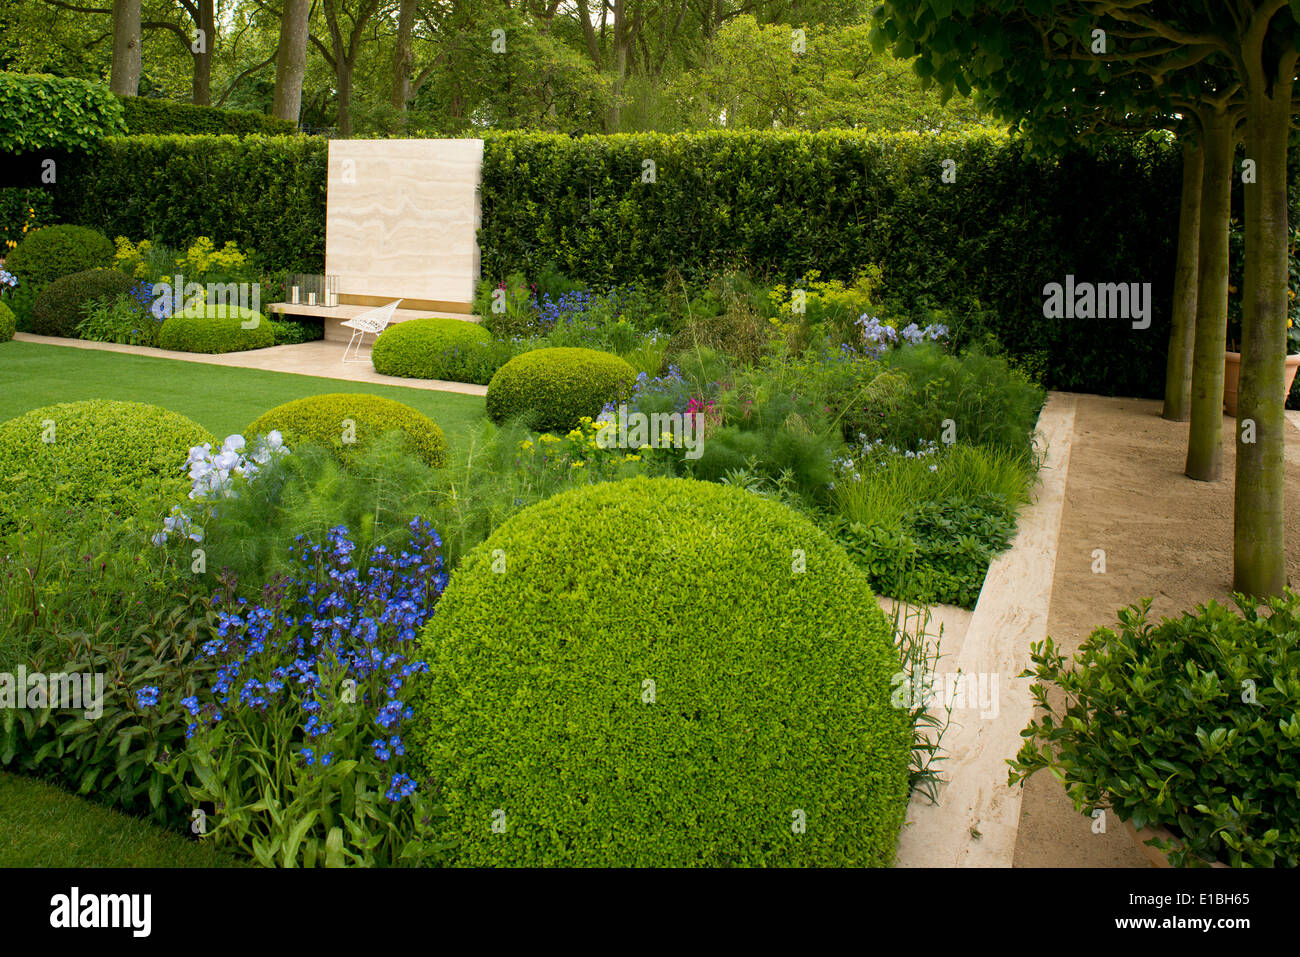 The telegraph garden gold medal winn at the chelsea flower show 2014 stock photo 69711101 alamy - Chelsea flower show gold medal winners ...